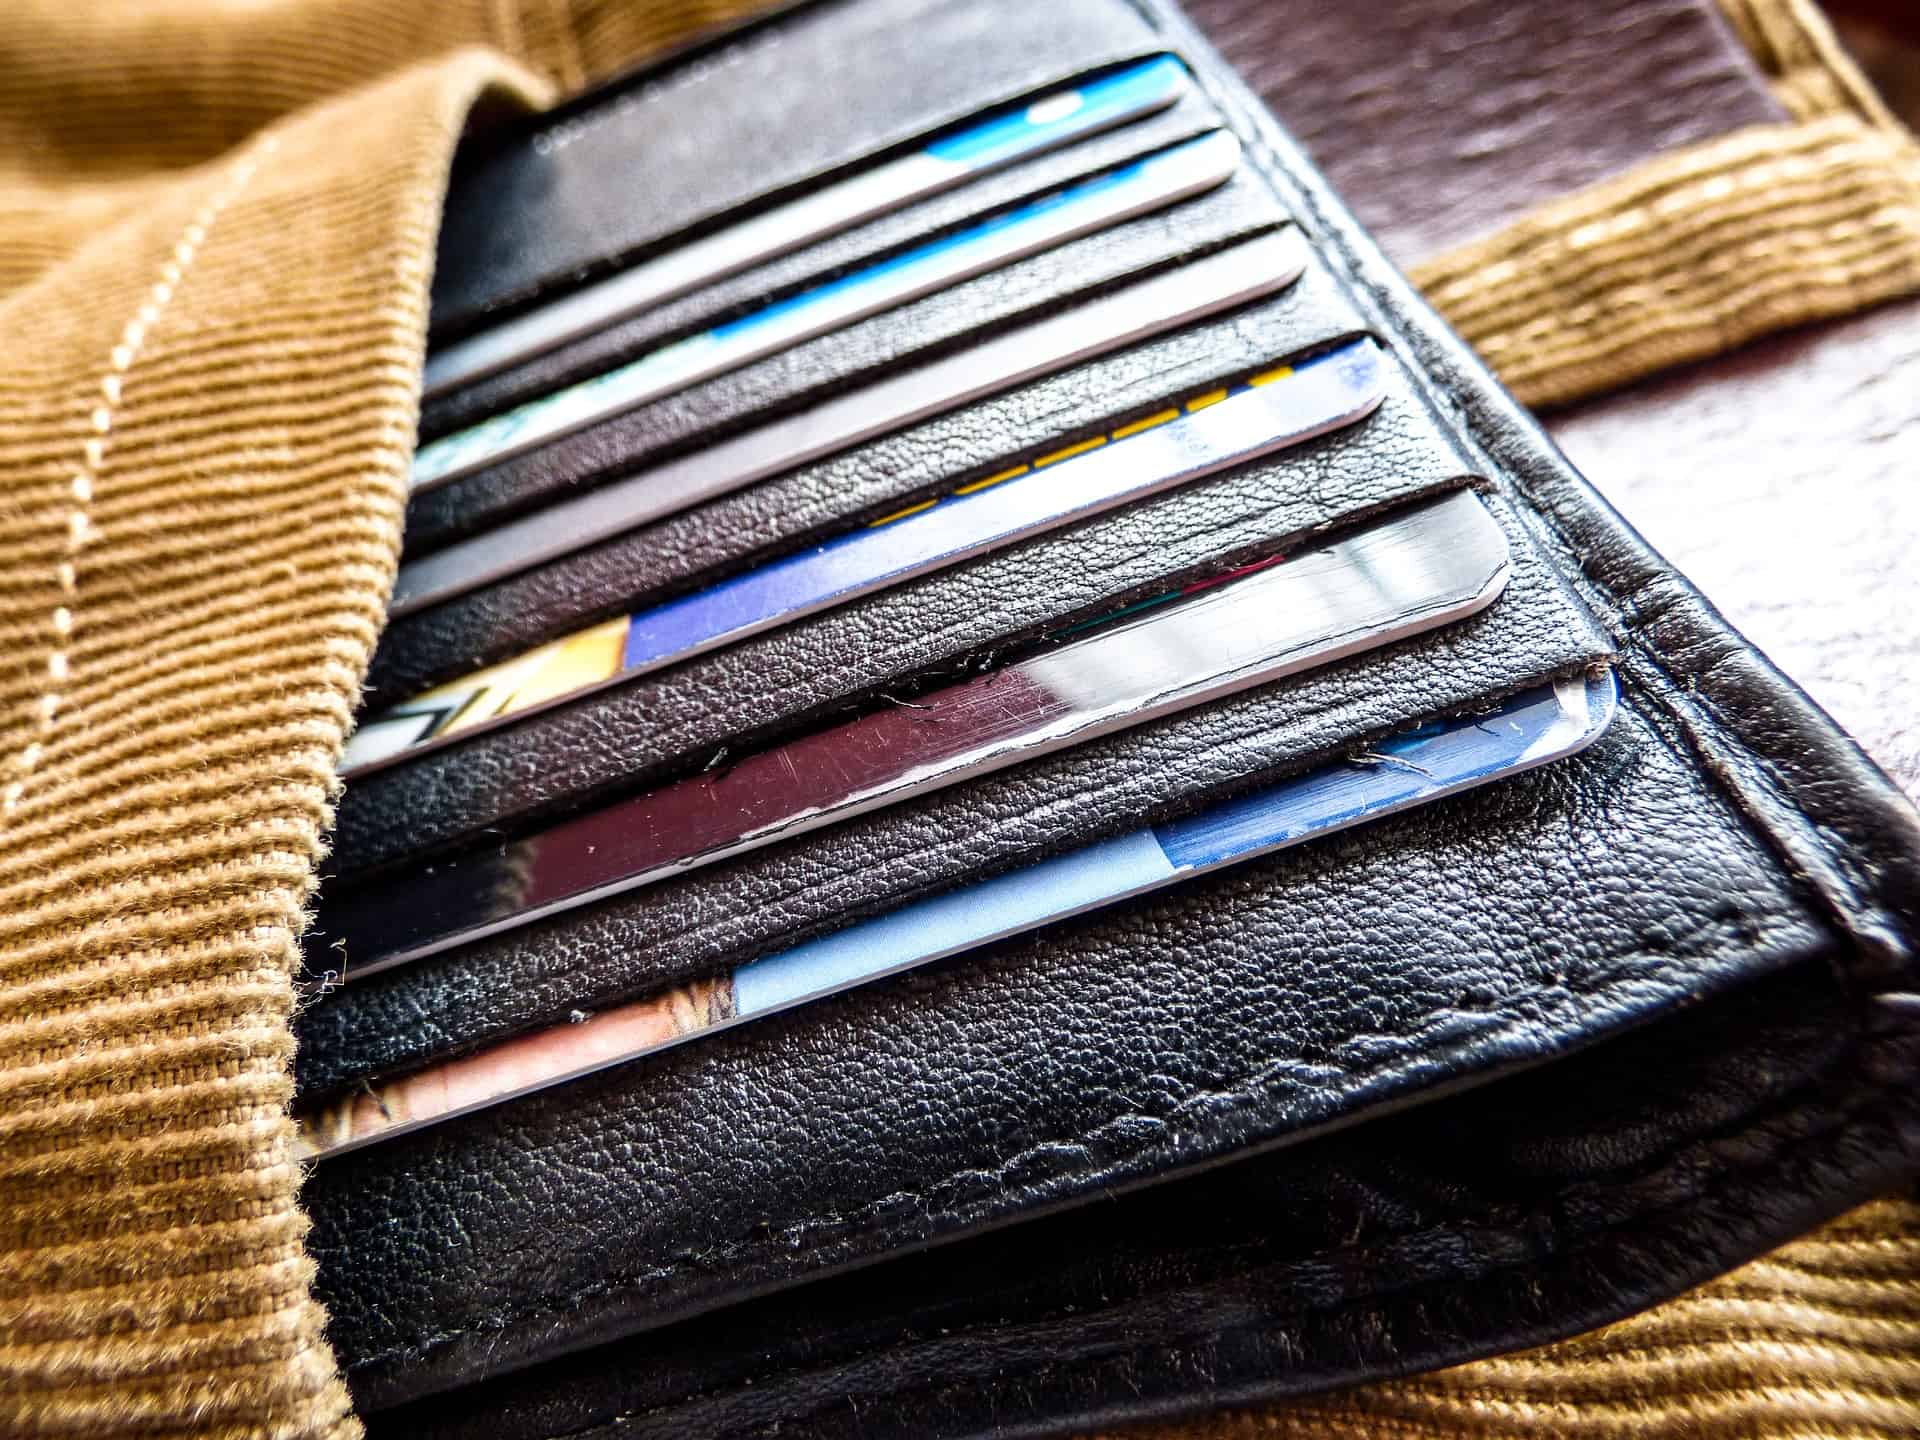 pants wallet credit card manly